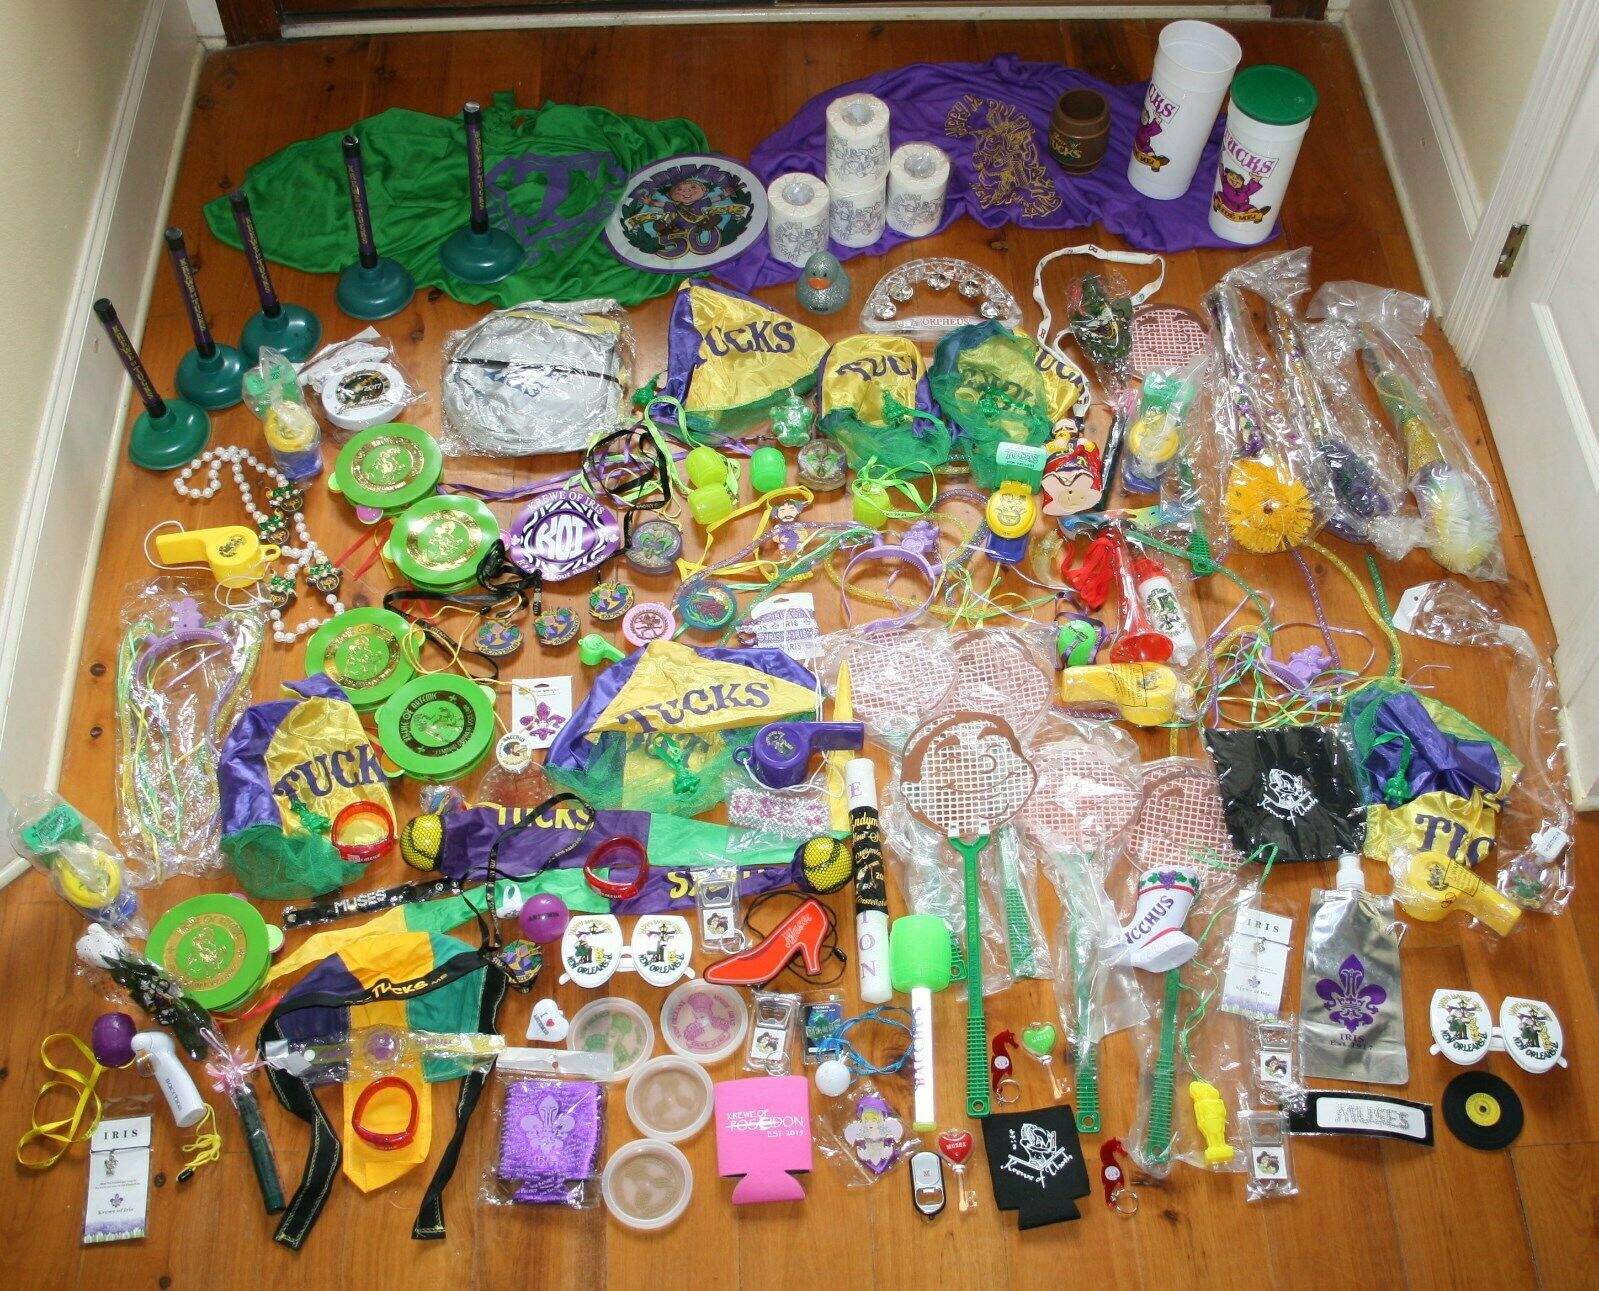 Lot 125 Branded New Orleans Mardi Gras Parade Throws Tucks Iris Bacchus etc.